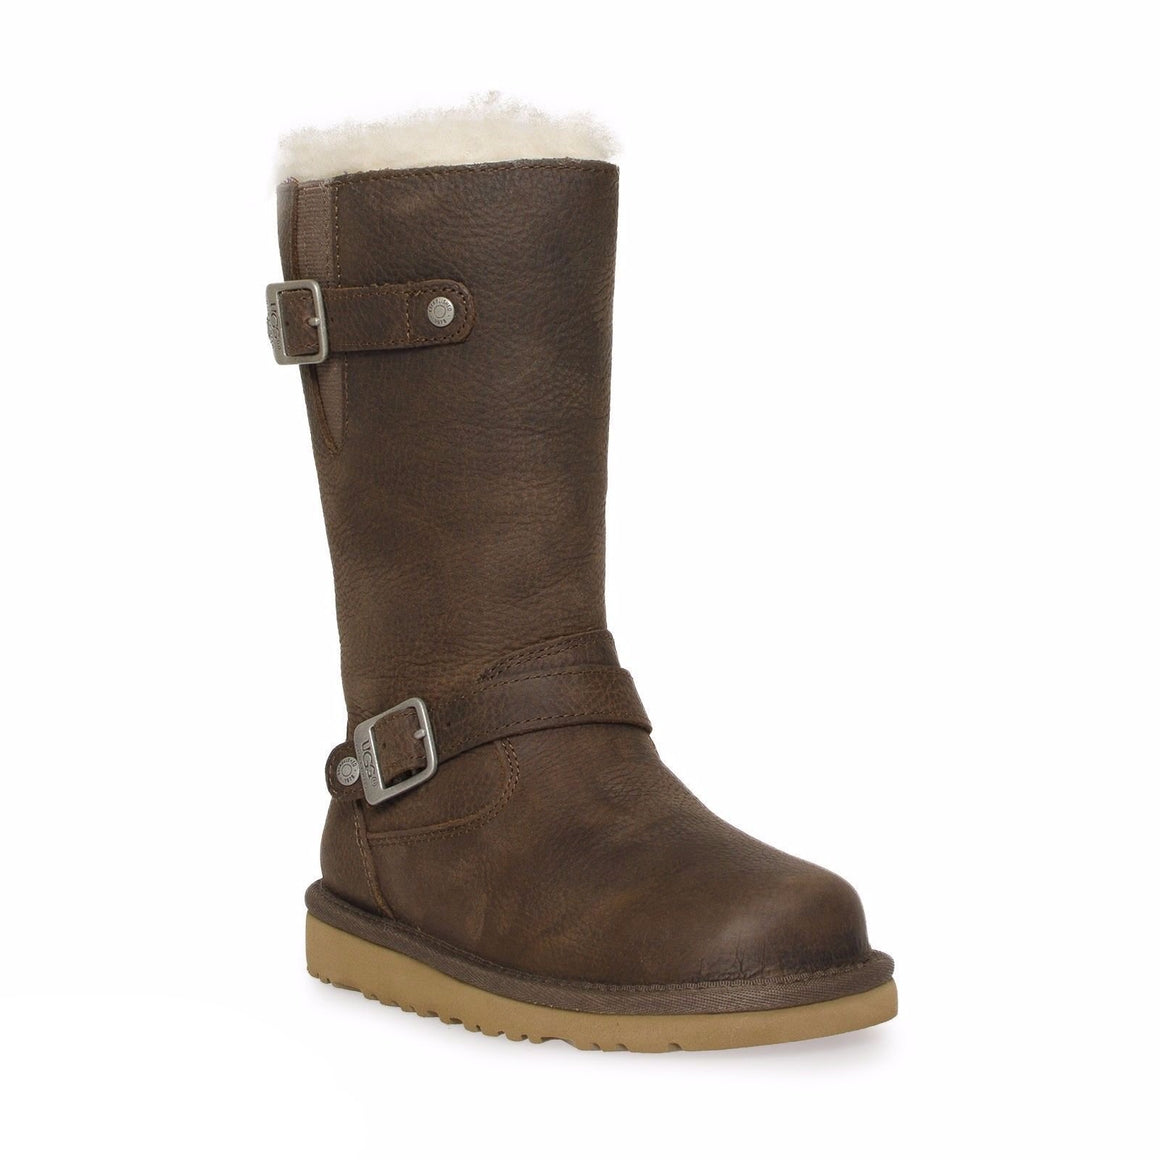 UGG AUSTRALIA KENSINGTON BROWN TALL BOOTS 1969